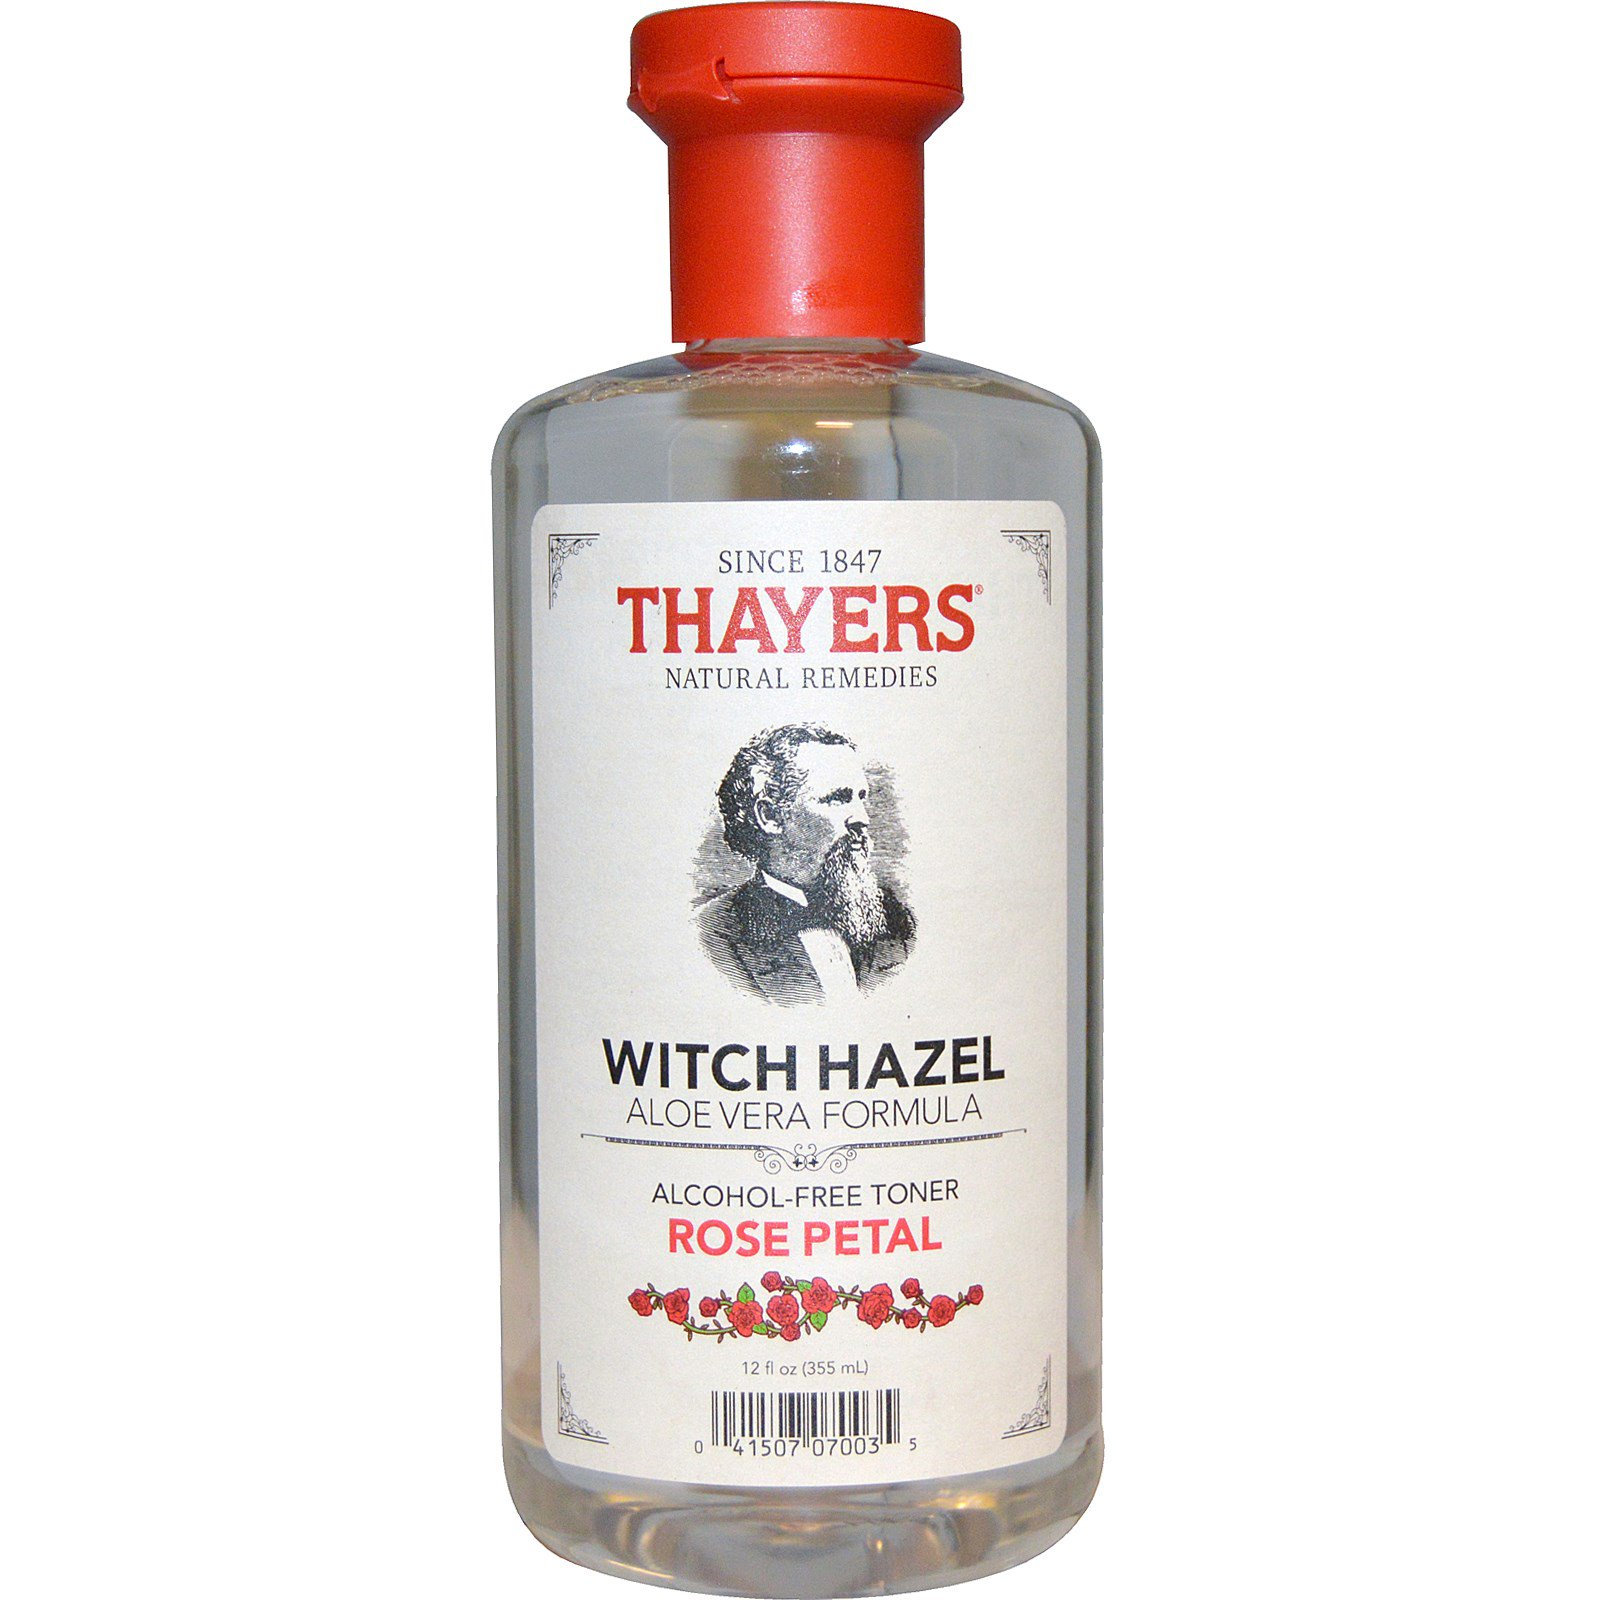 Thayers, Witch Hazel, Aloe Vera Formula, Alcohol-Free Toner, Rose Petal, 12 fl oz(pack of 6)